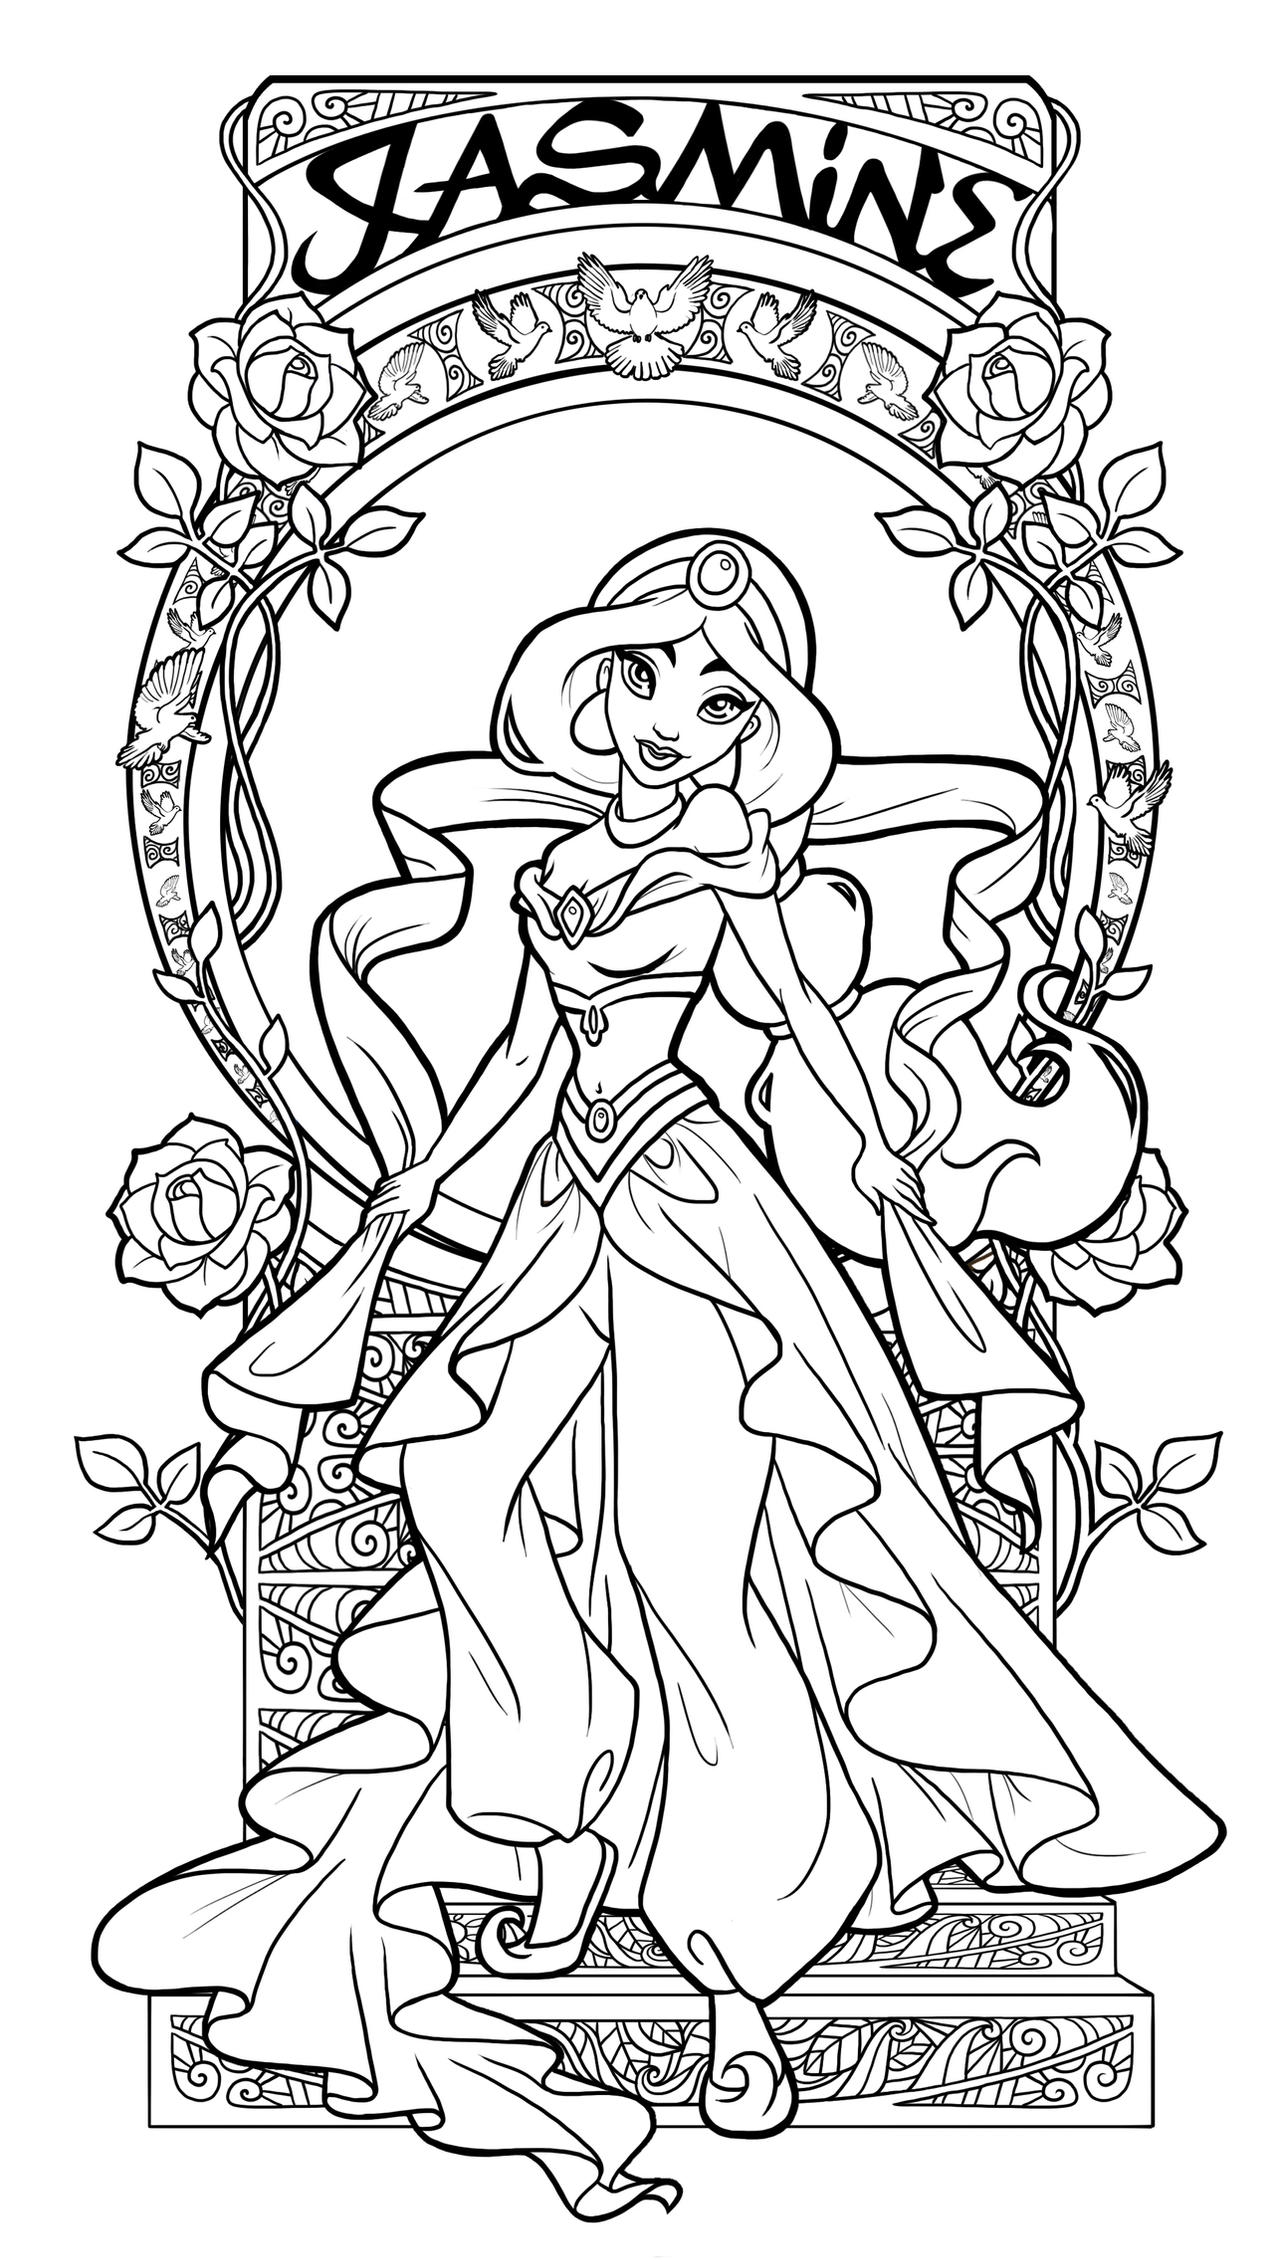 Jasmine art nouveau lineart by paola tosca on deviantart for Coloring pages of jasmine